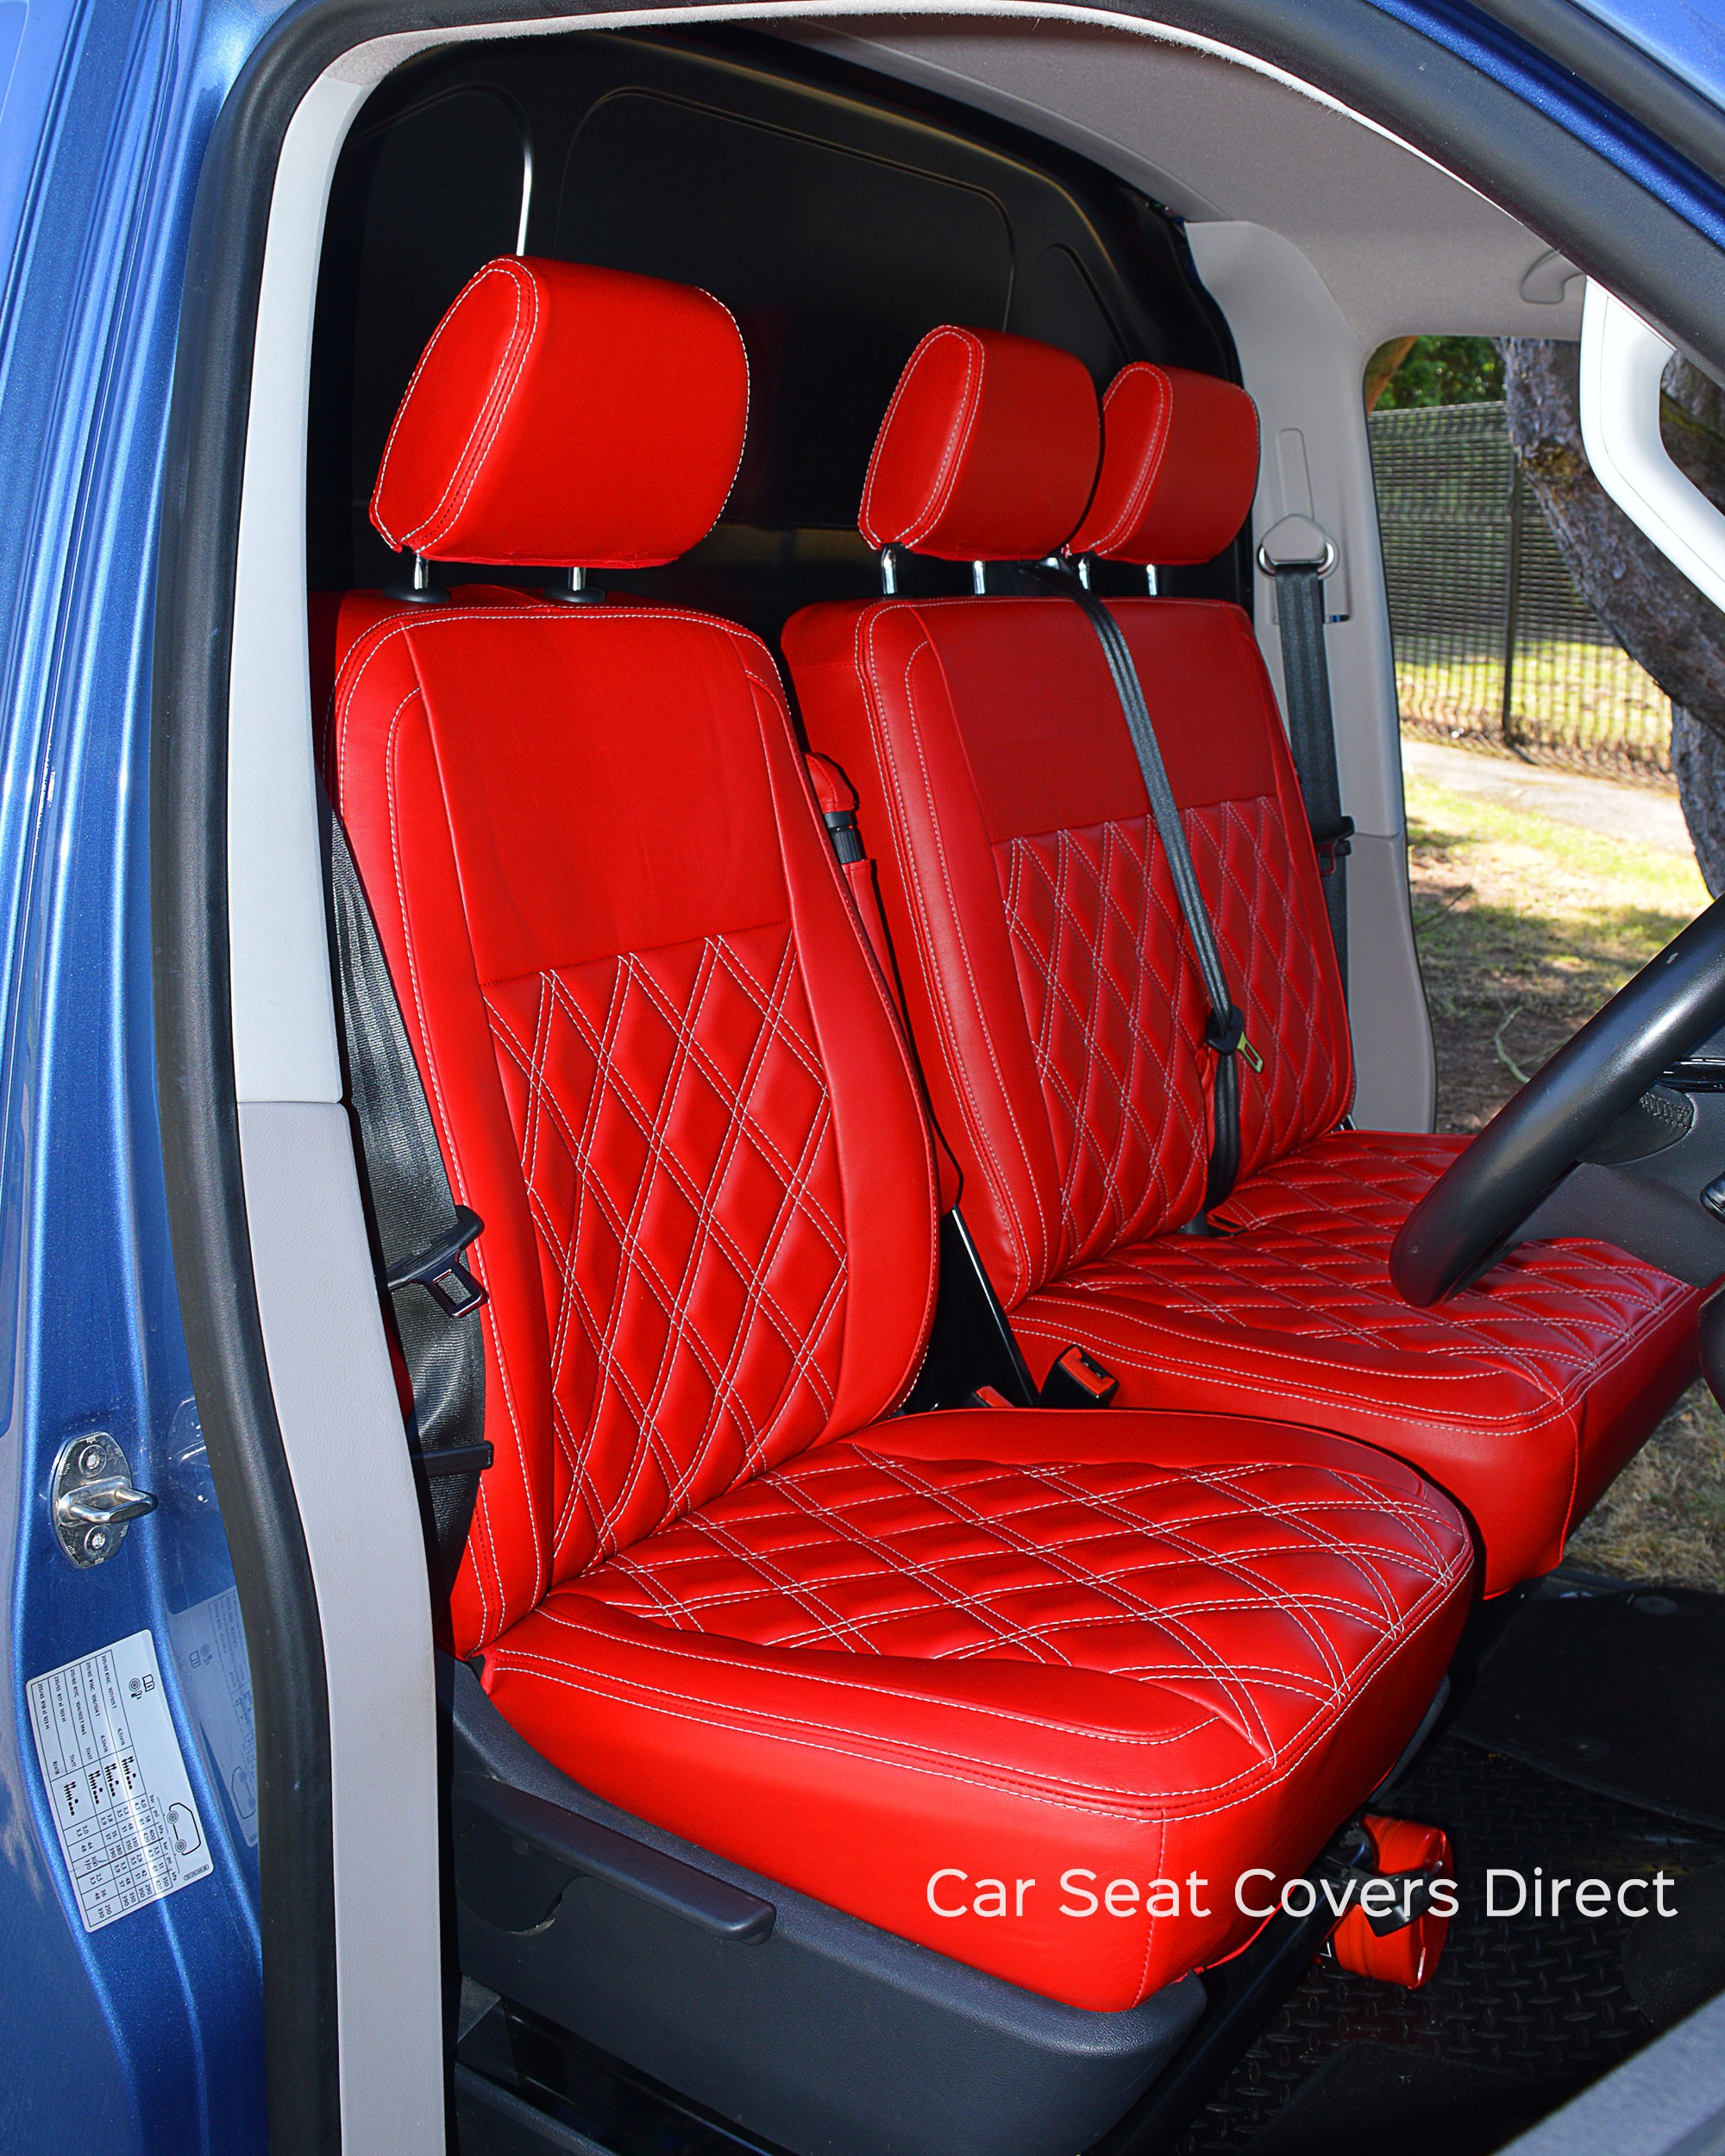 VW Transporter T5 Tailored Seat Covers -Drivers seat